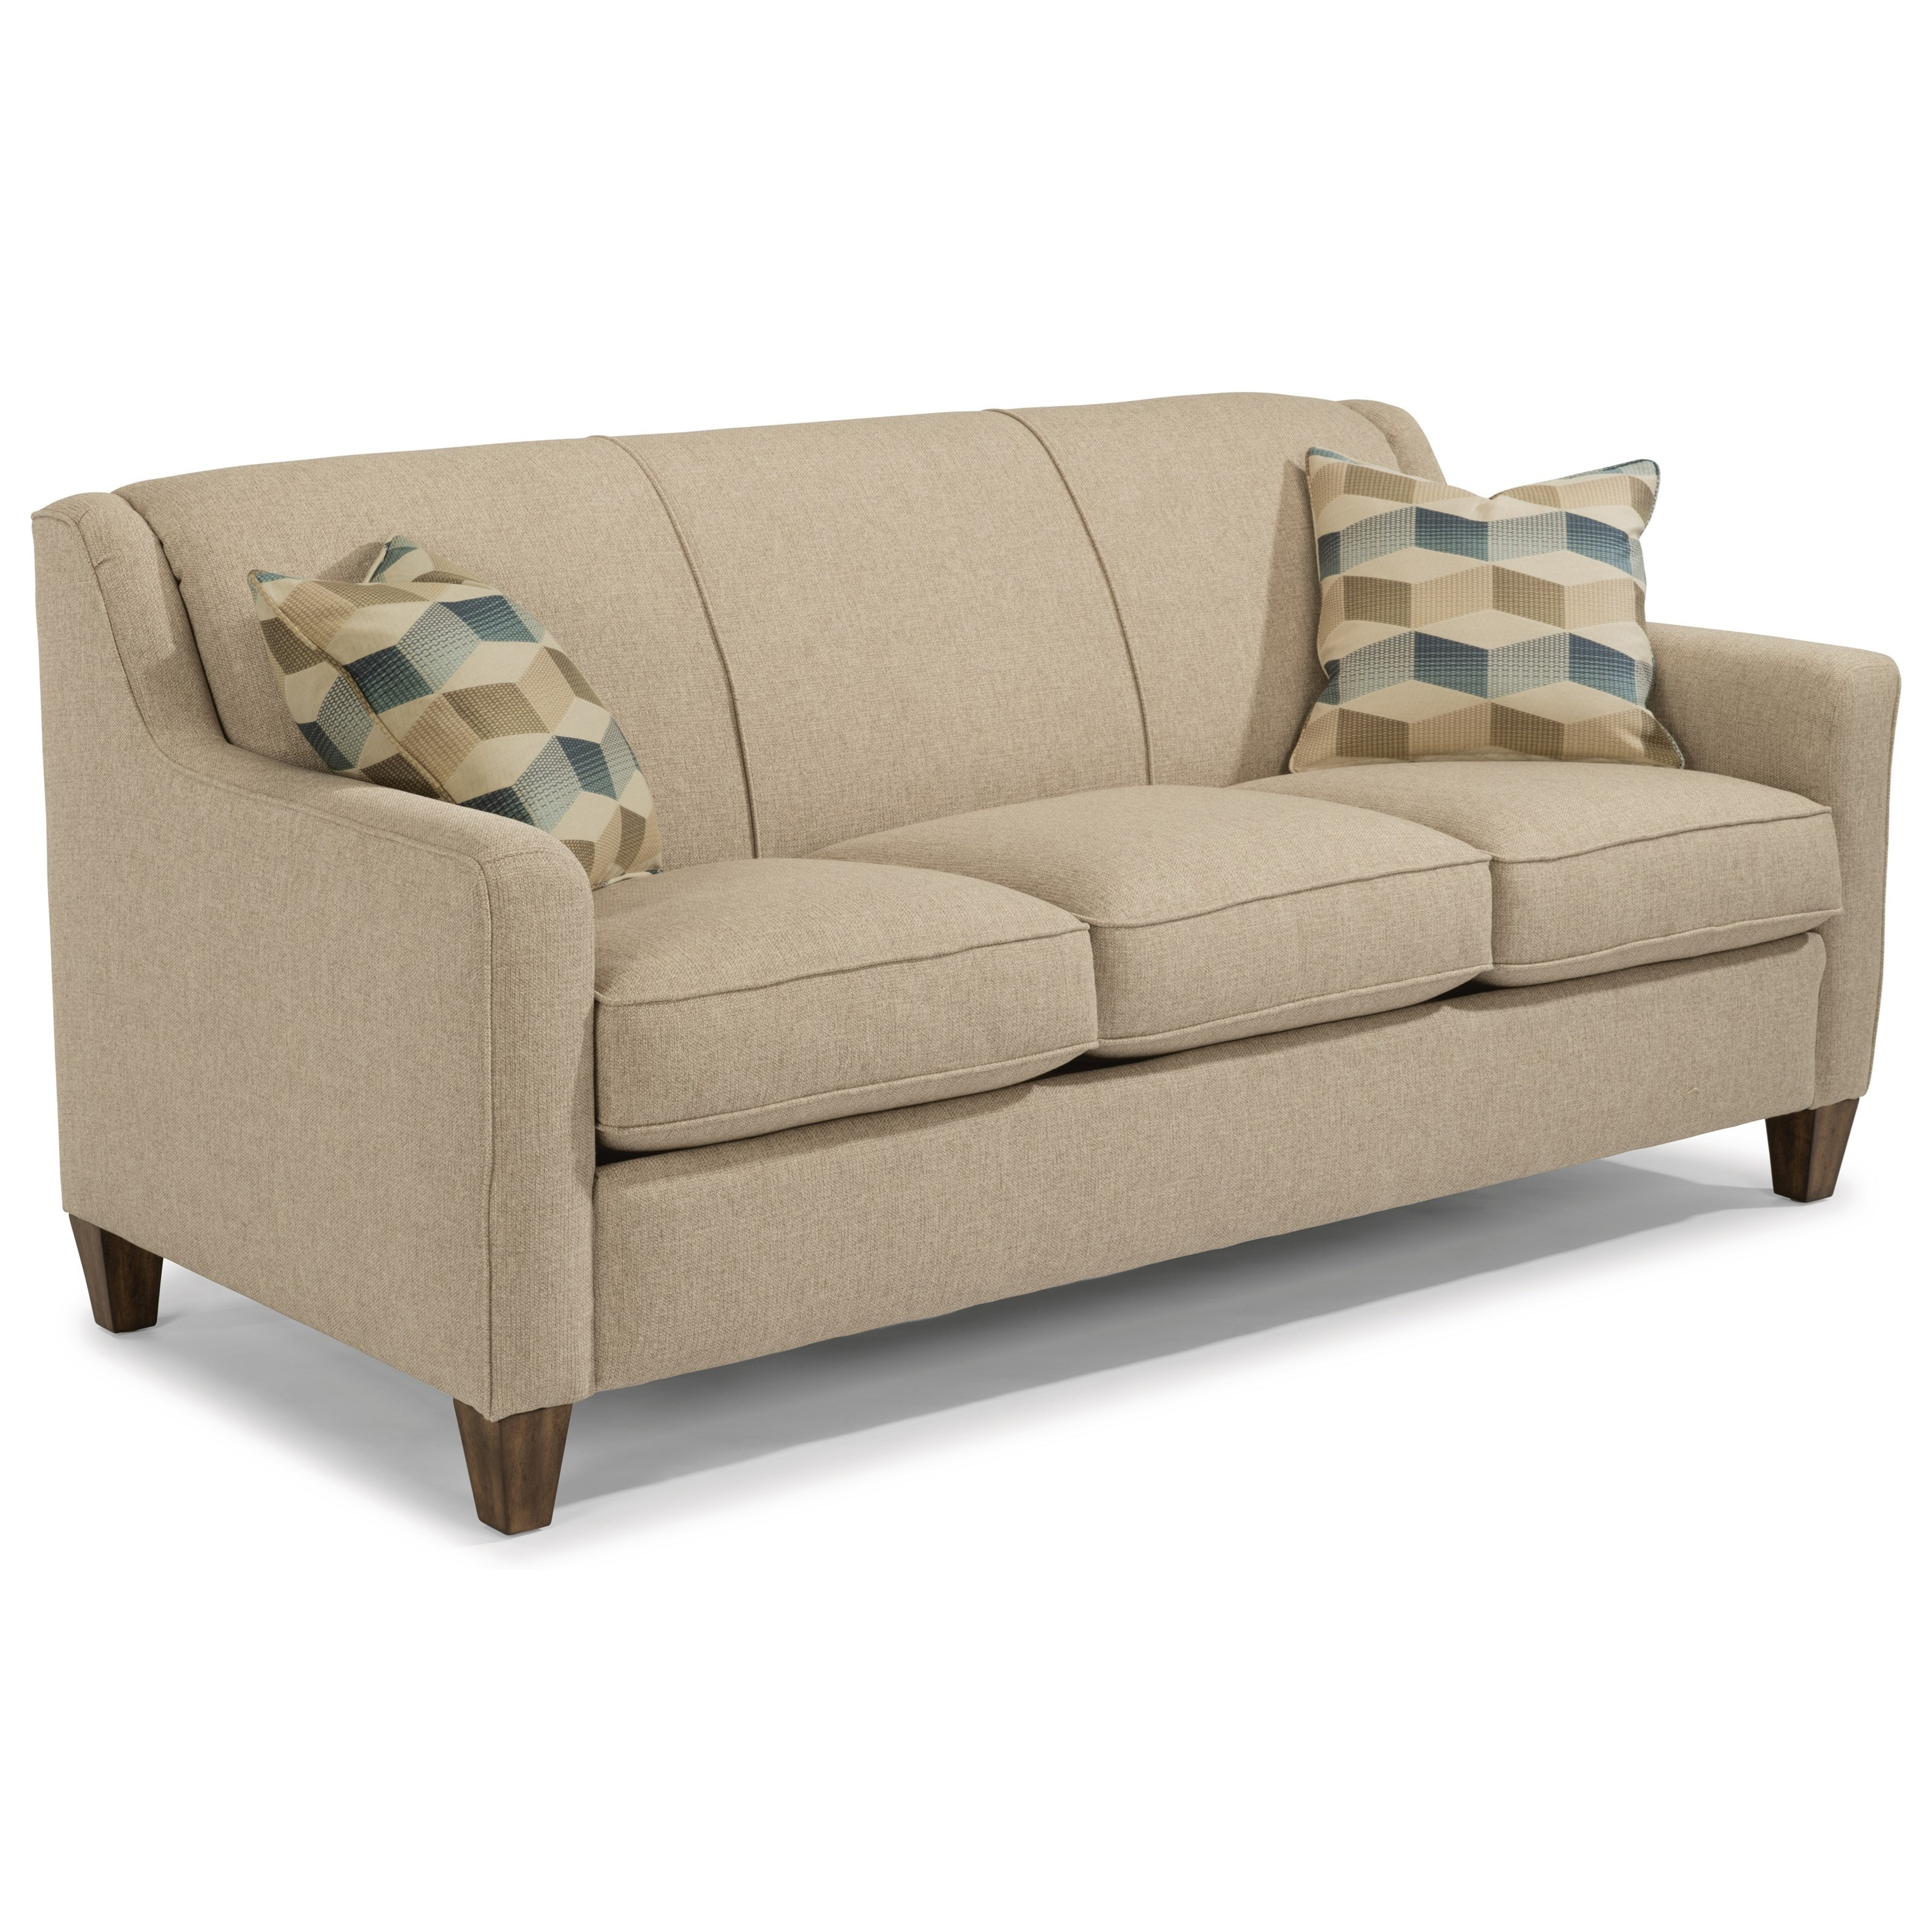 leather possibilities track arm sofa upholstery cleaning service flexsteel holly contemporary queen sleeper with